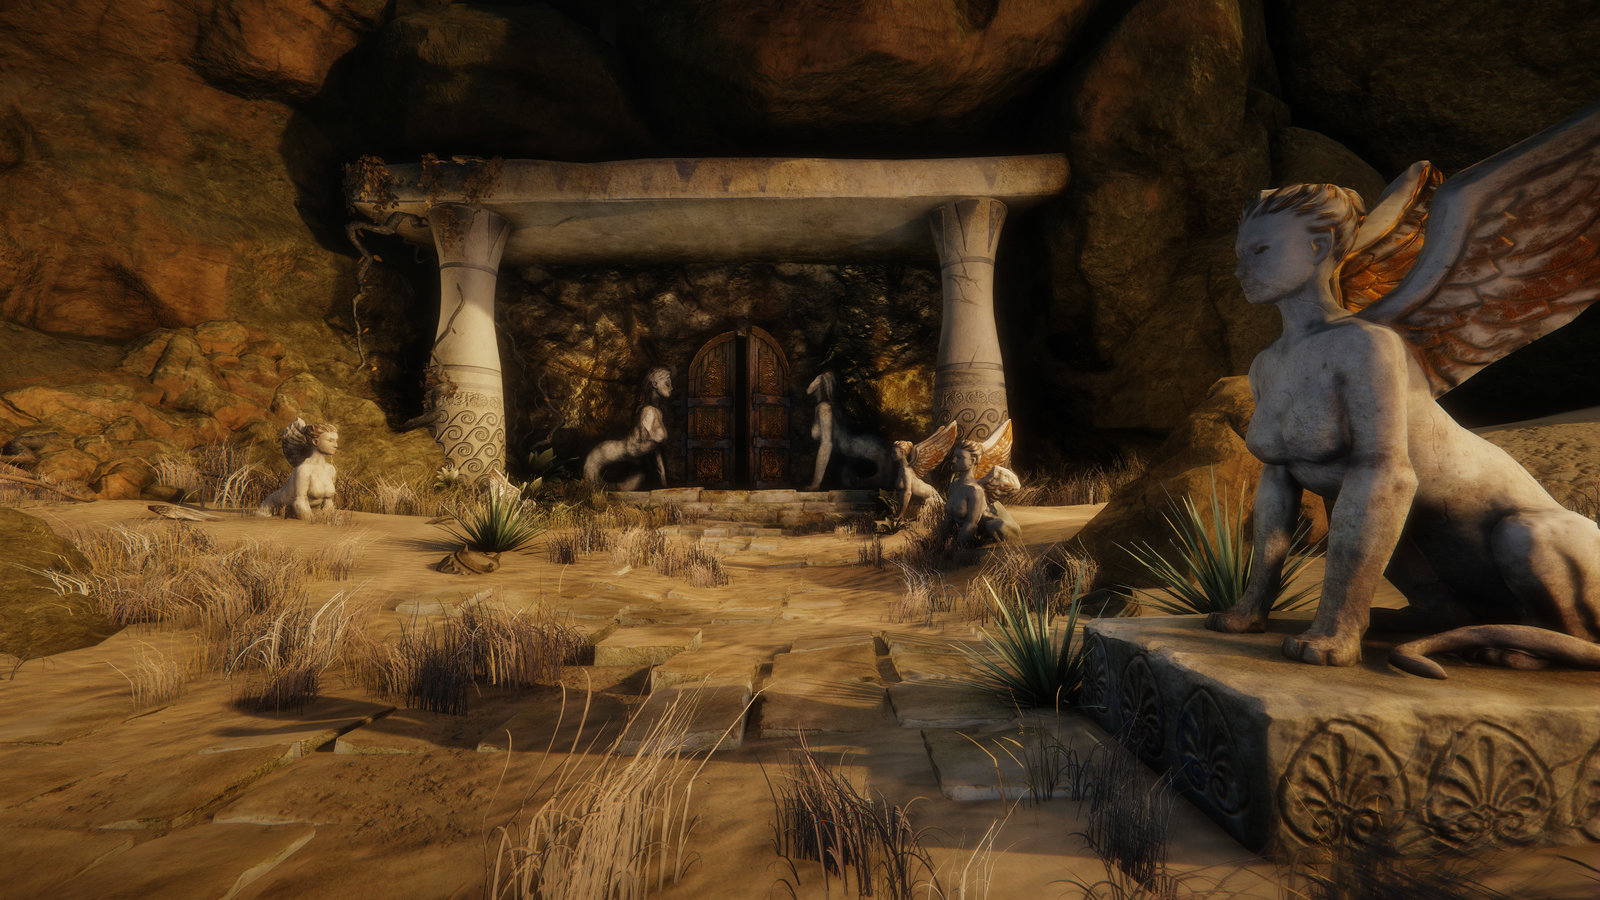 Student Work - Water Temple